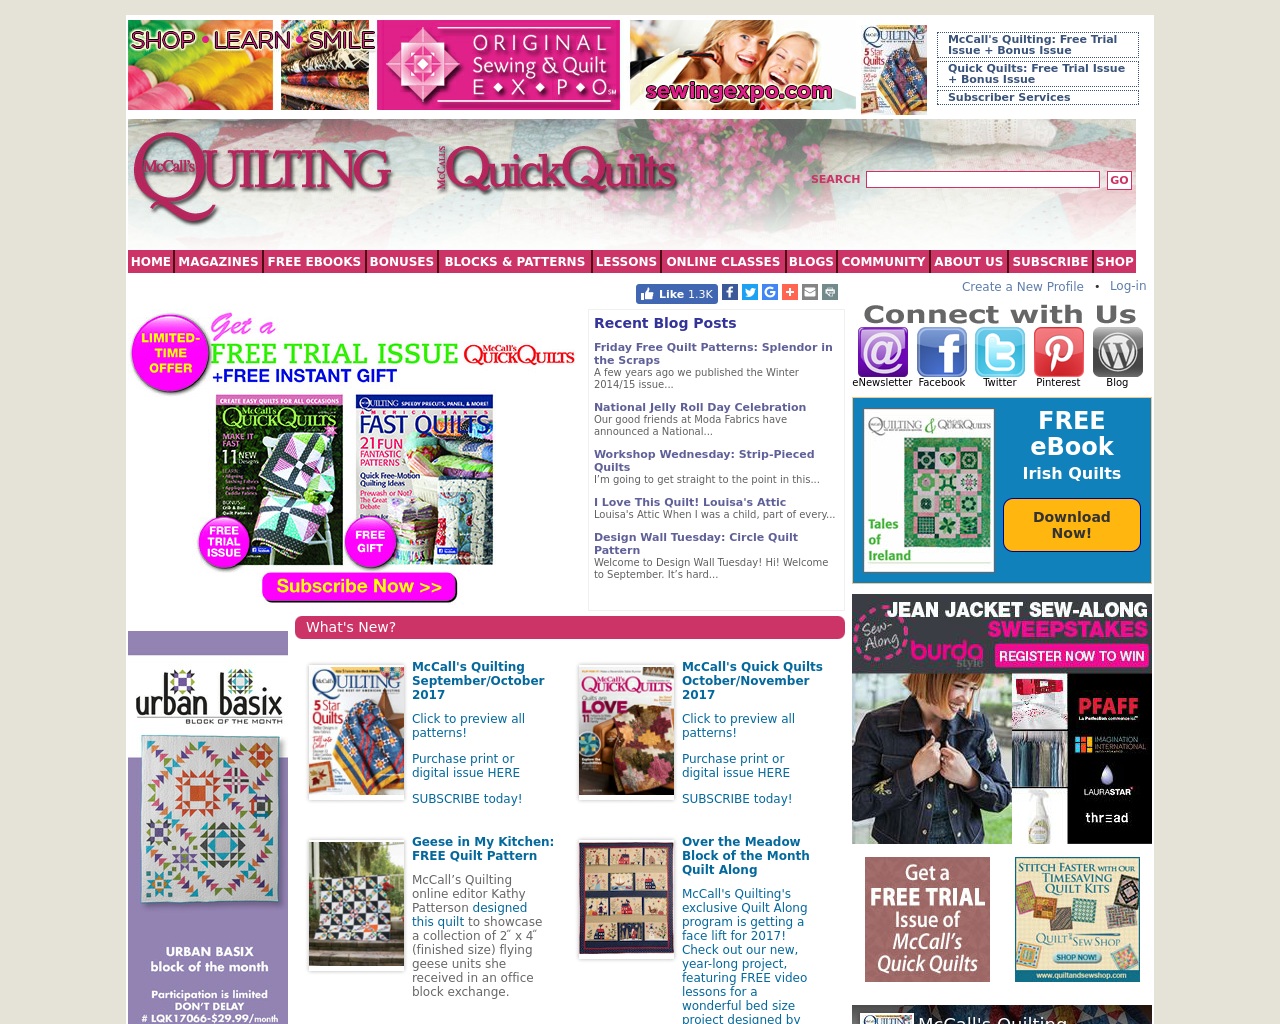 Mccall's-Quilting-Advertising-Reviews-Pricing